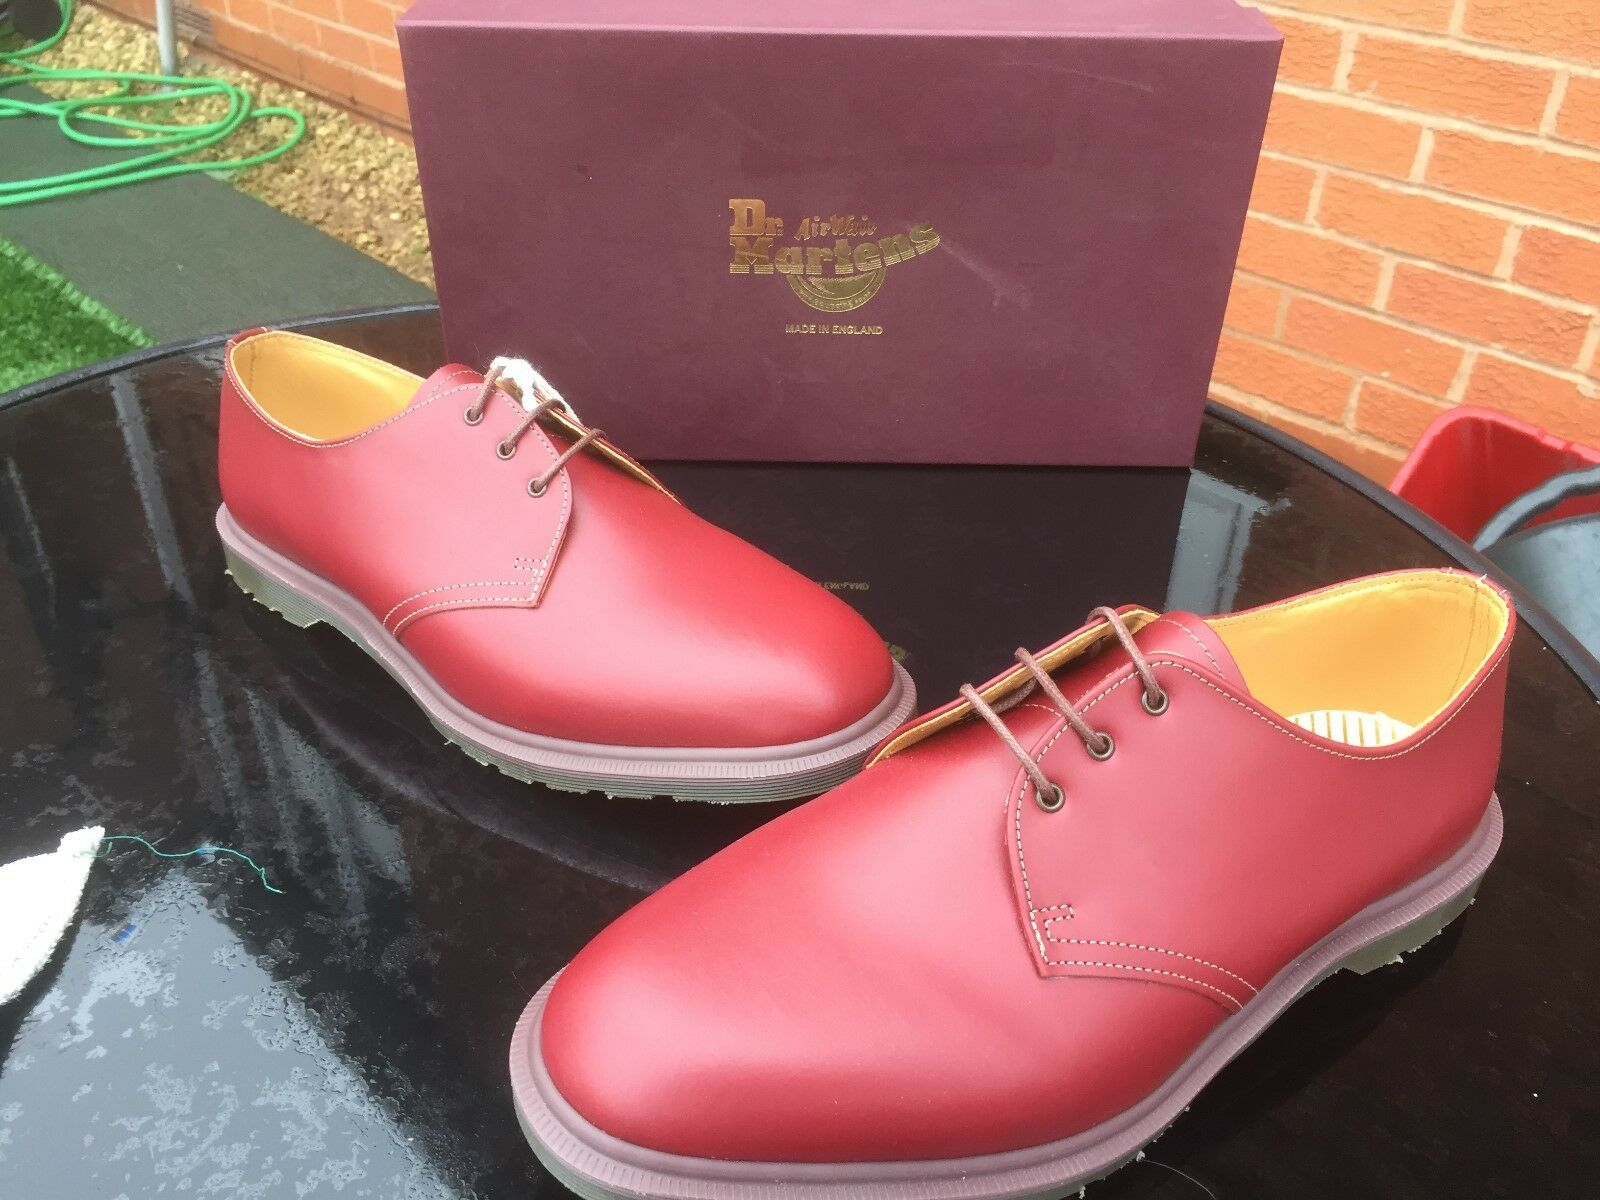 Martens Steed Dr AMARANTO quilon in Pelle in Tg EU 39 Made in Pelle England b3d75c